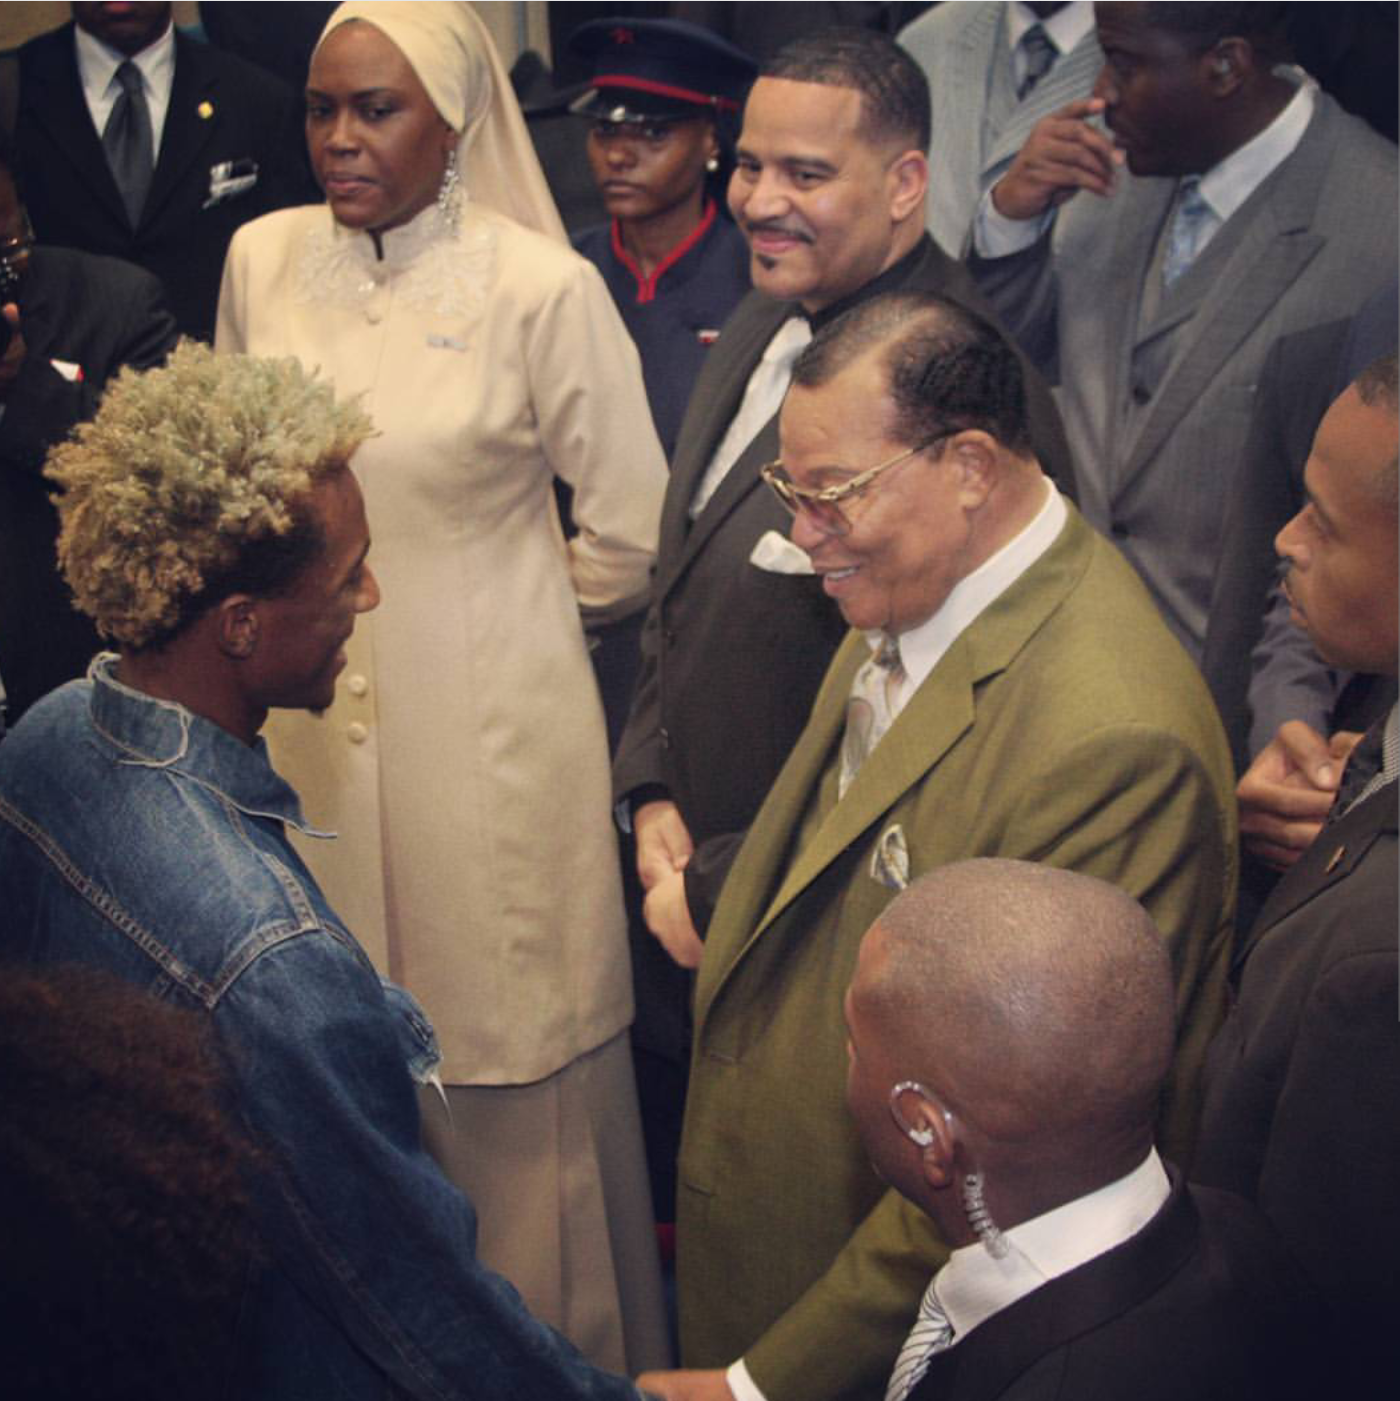 Farrakhan- A Man Worthy to Protect with My Life: A Response to Kwame Rose from LaShonda Muhammad